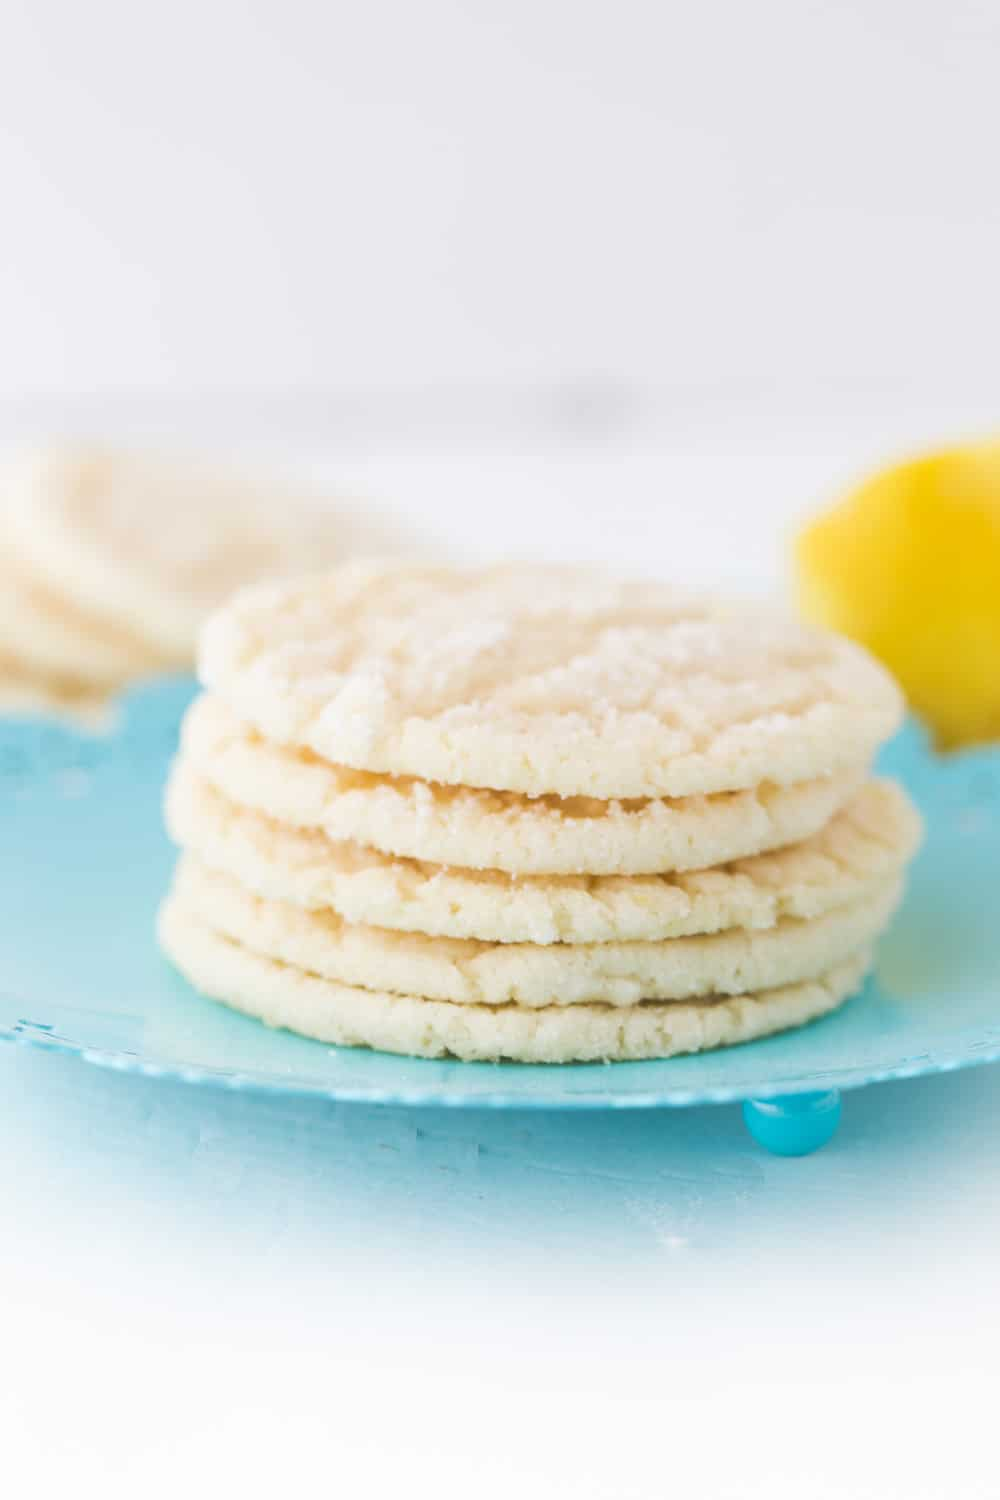 These lemon cookies are delicious and perfect when you want something lemony and sweet!